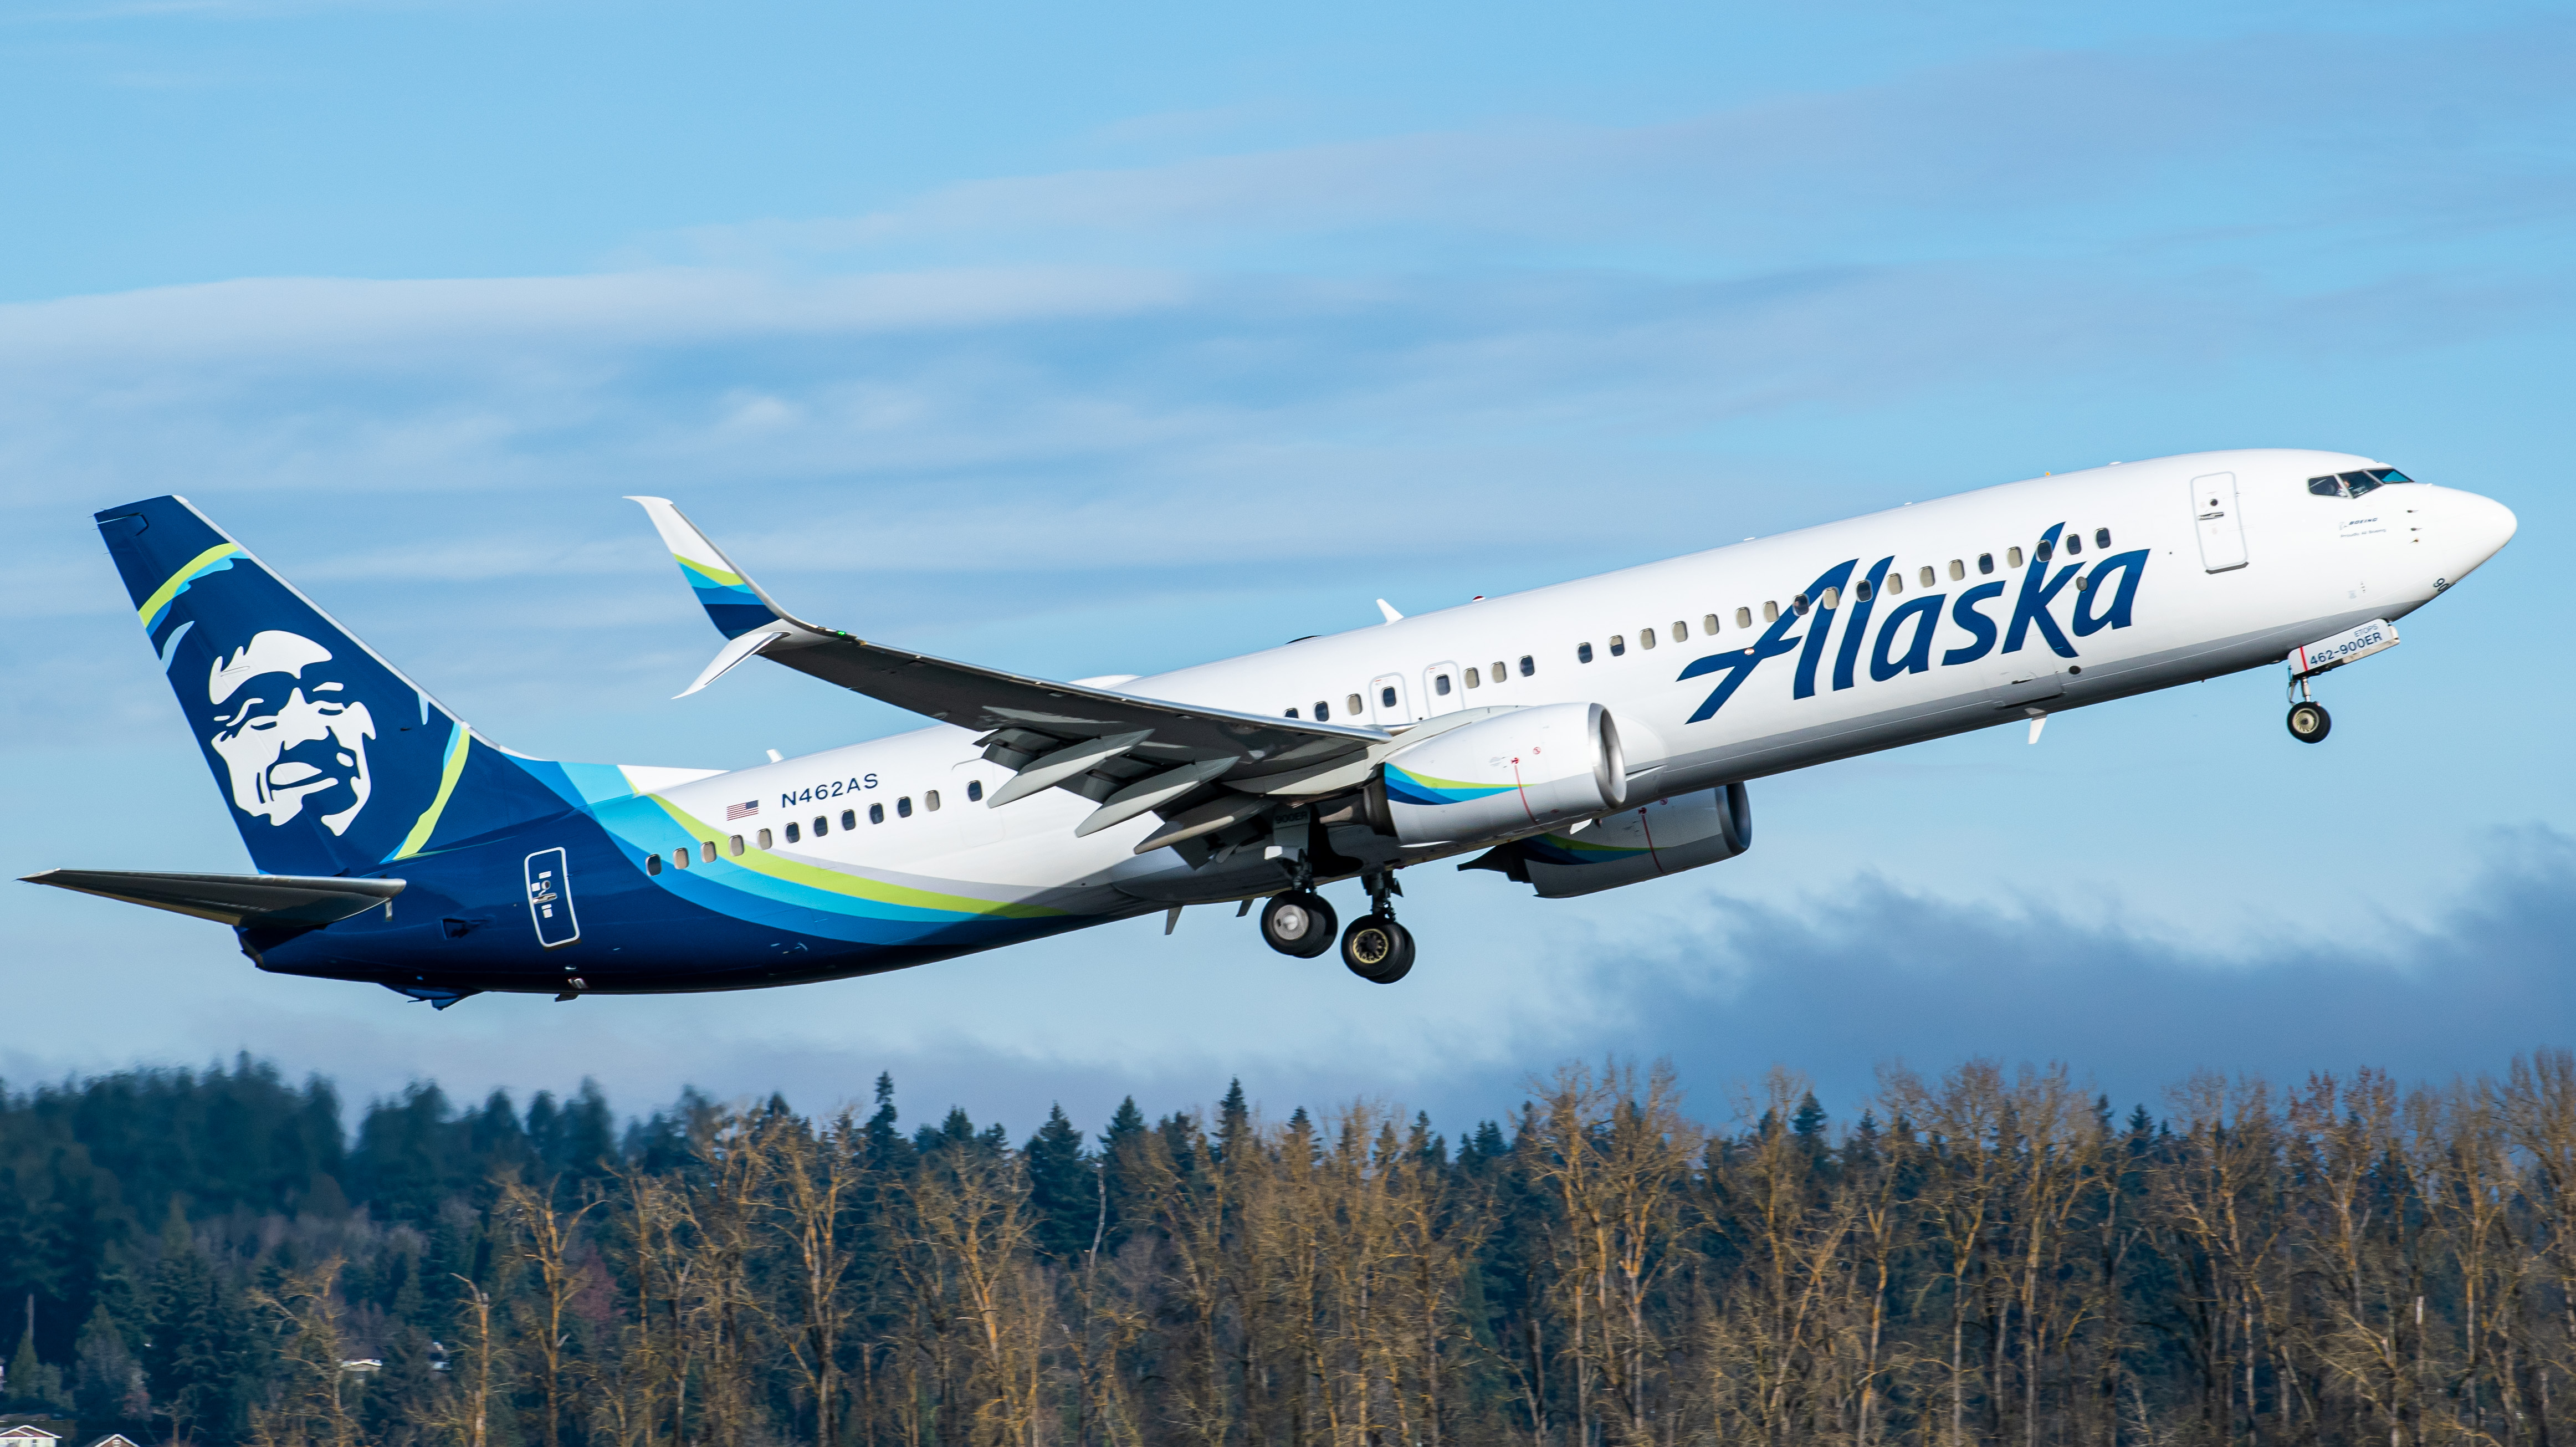 Photo of N462AS - Alaska Airlines Boeing 737-900ER at PDX